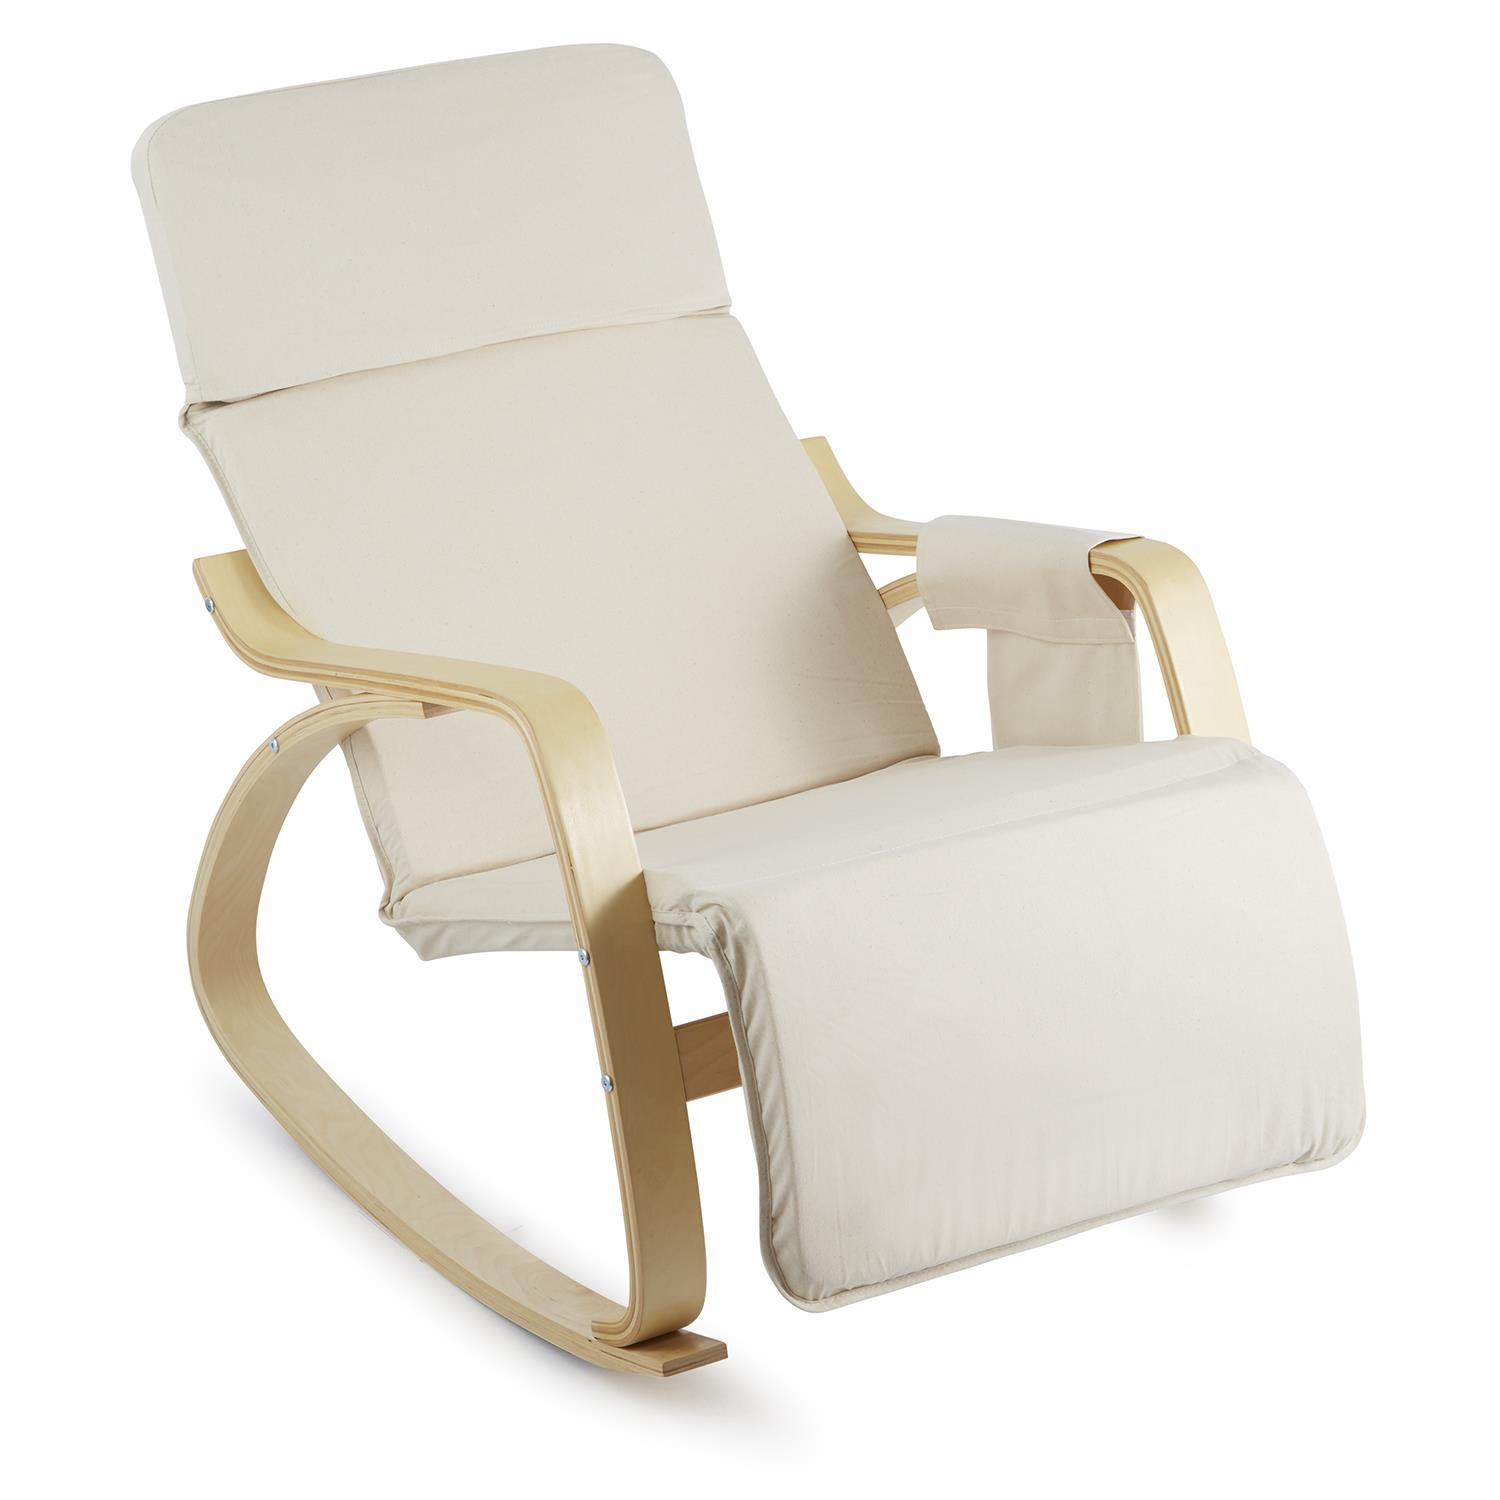 Plywood rocking chair - Image Is Loading Oneconcept Birch Plywood Rocking Chair Nursing Room Glide